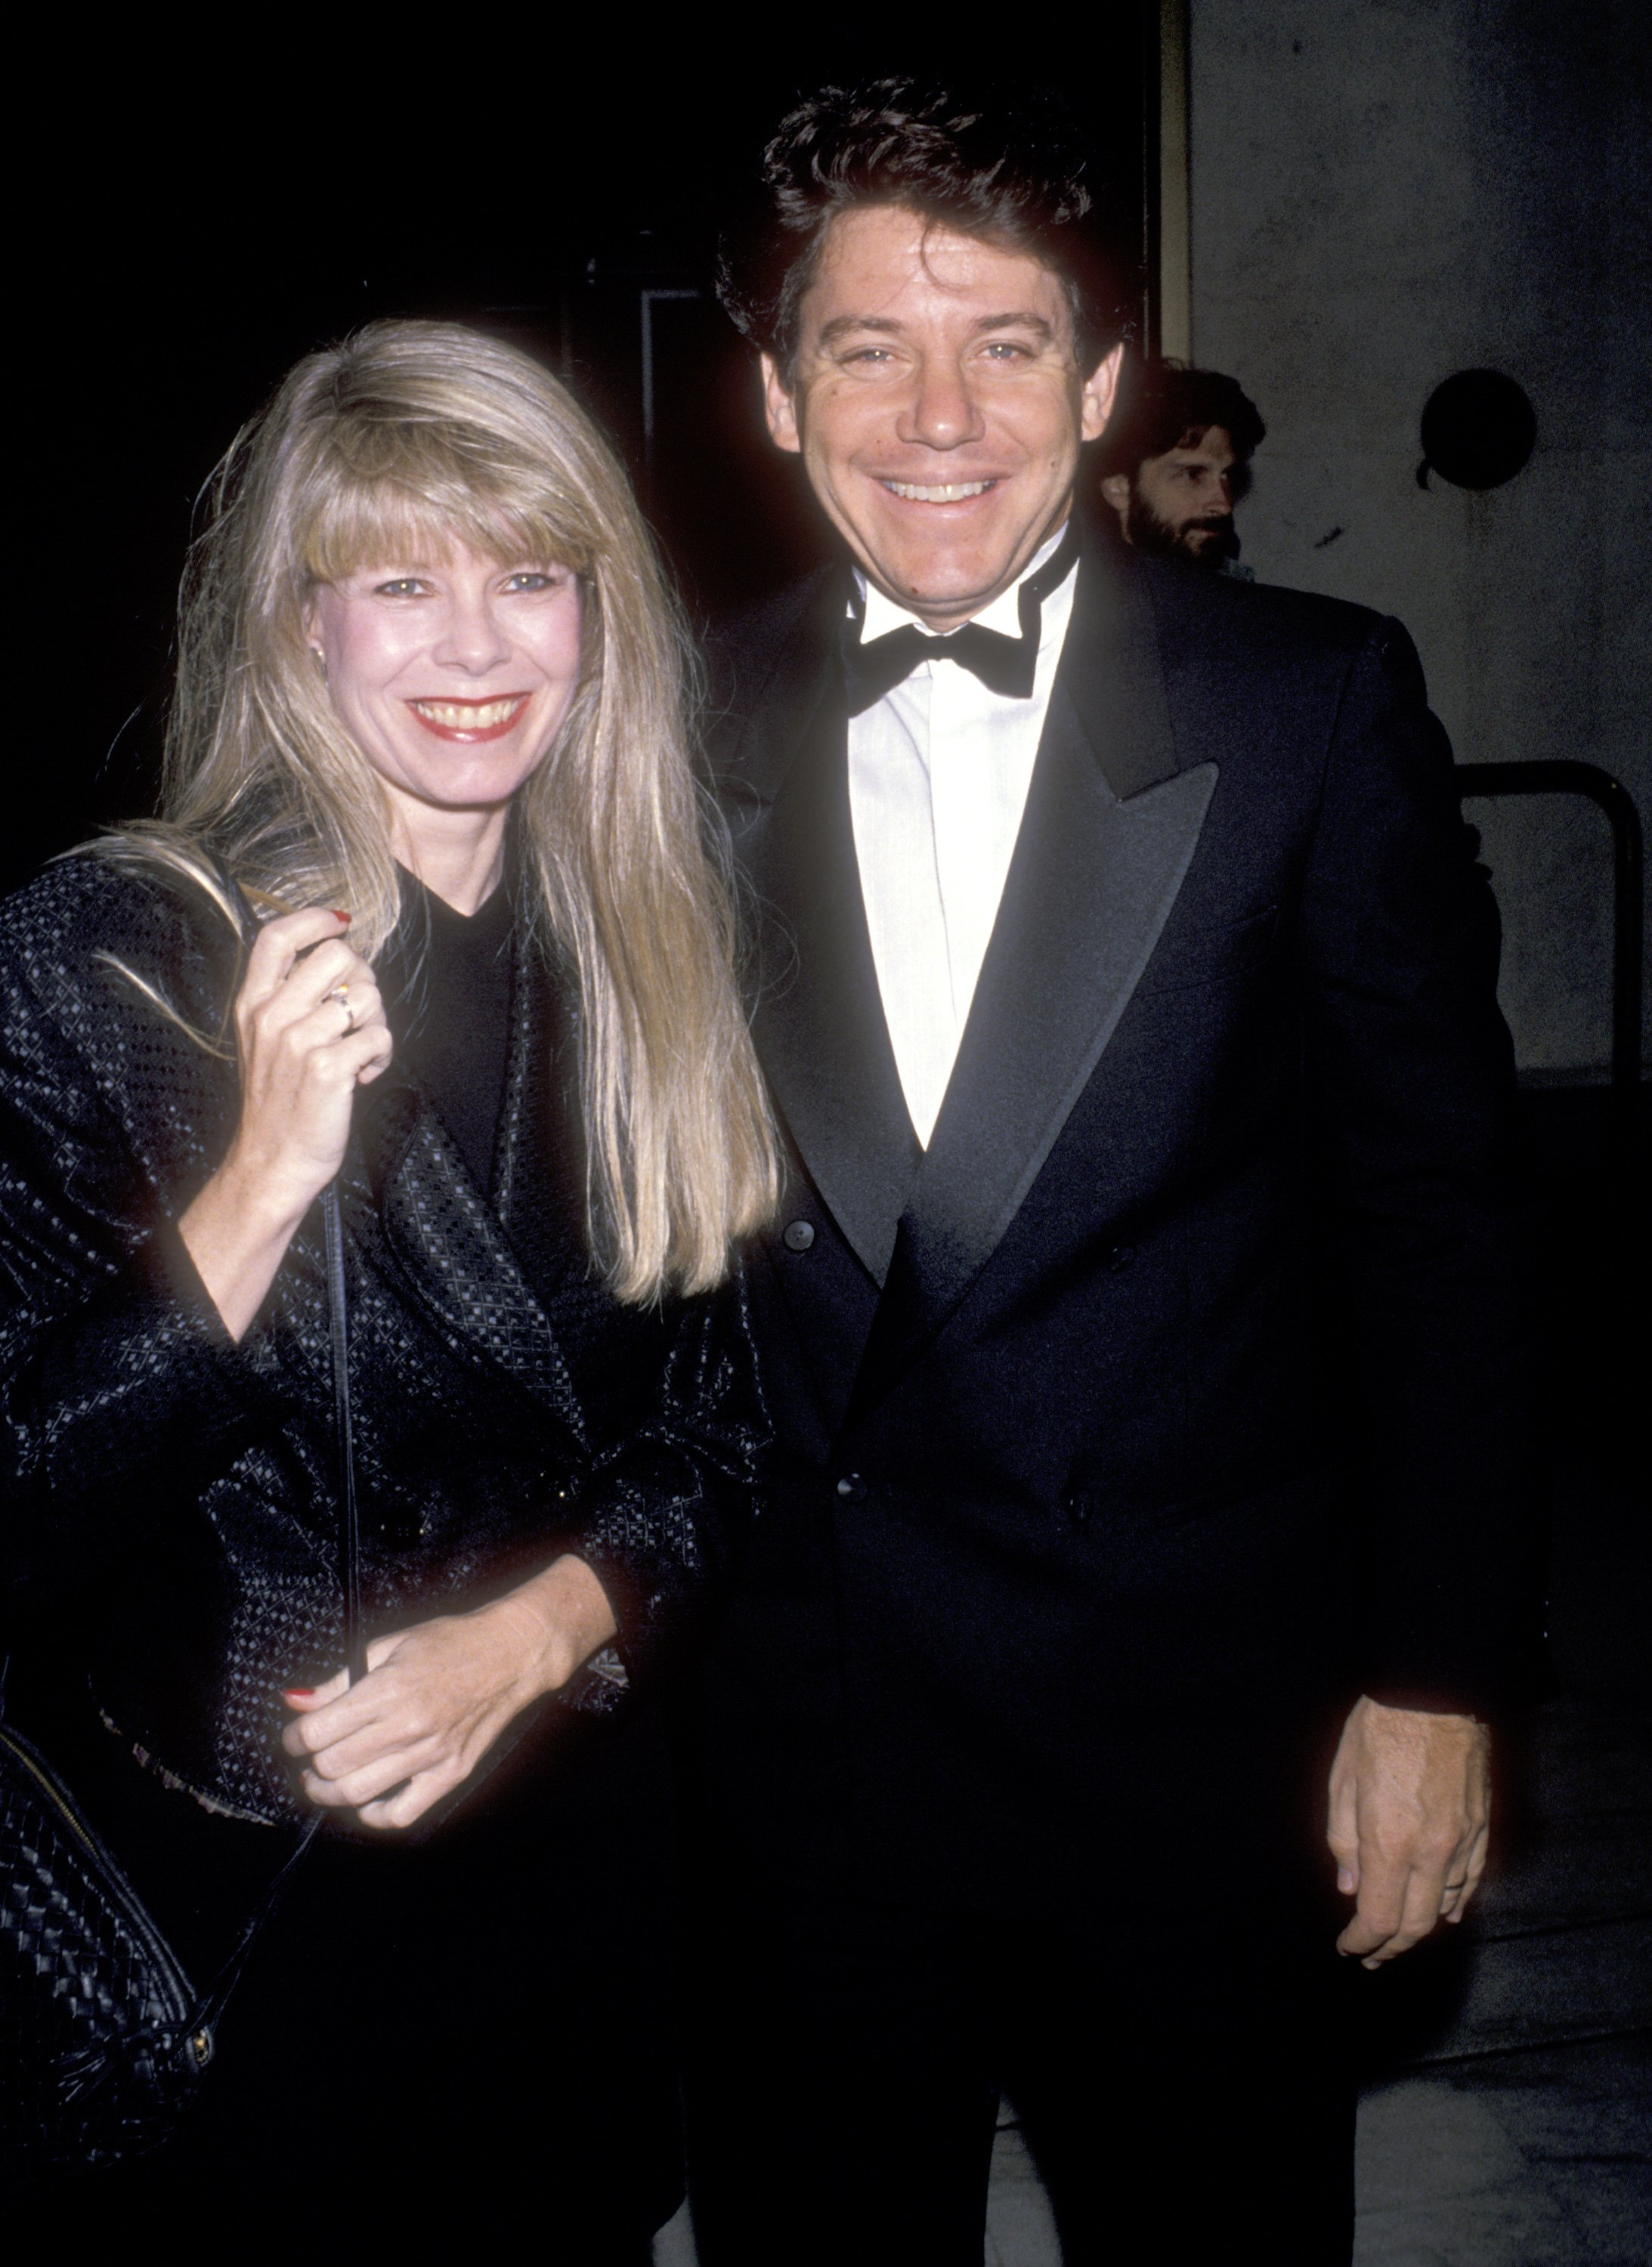 Anson Williams and wife Jackie Gerken attend The National Conference of Christians and Jews Gala on October 16, 1989, in Los Angeles, California. | Source: Getty Images.